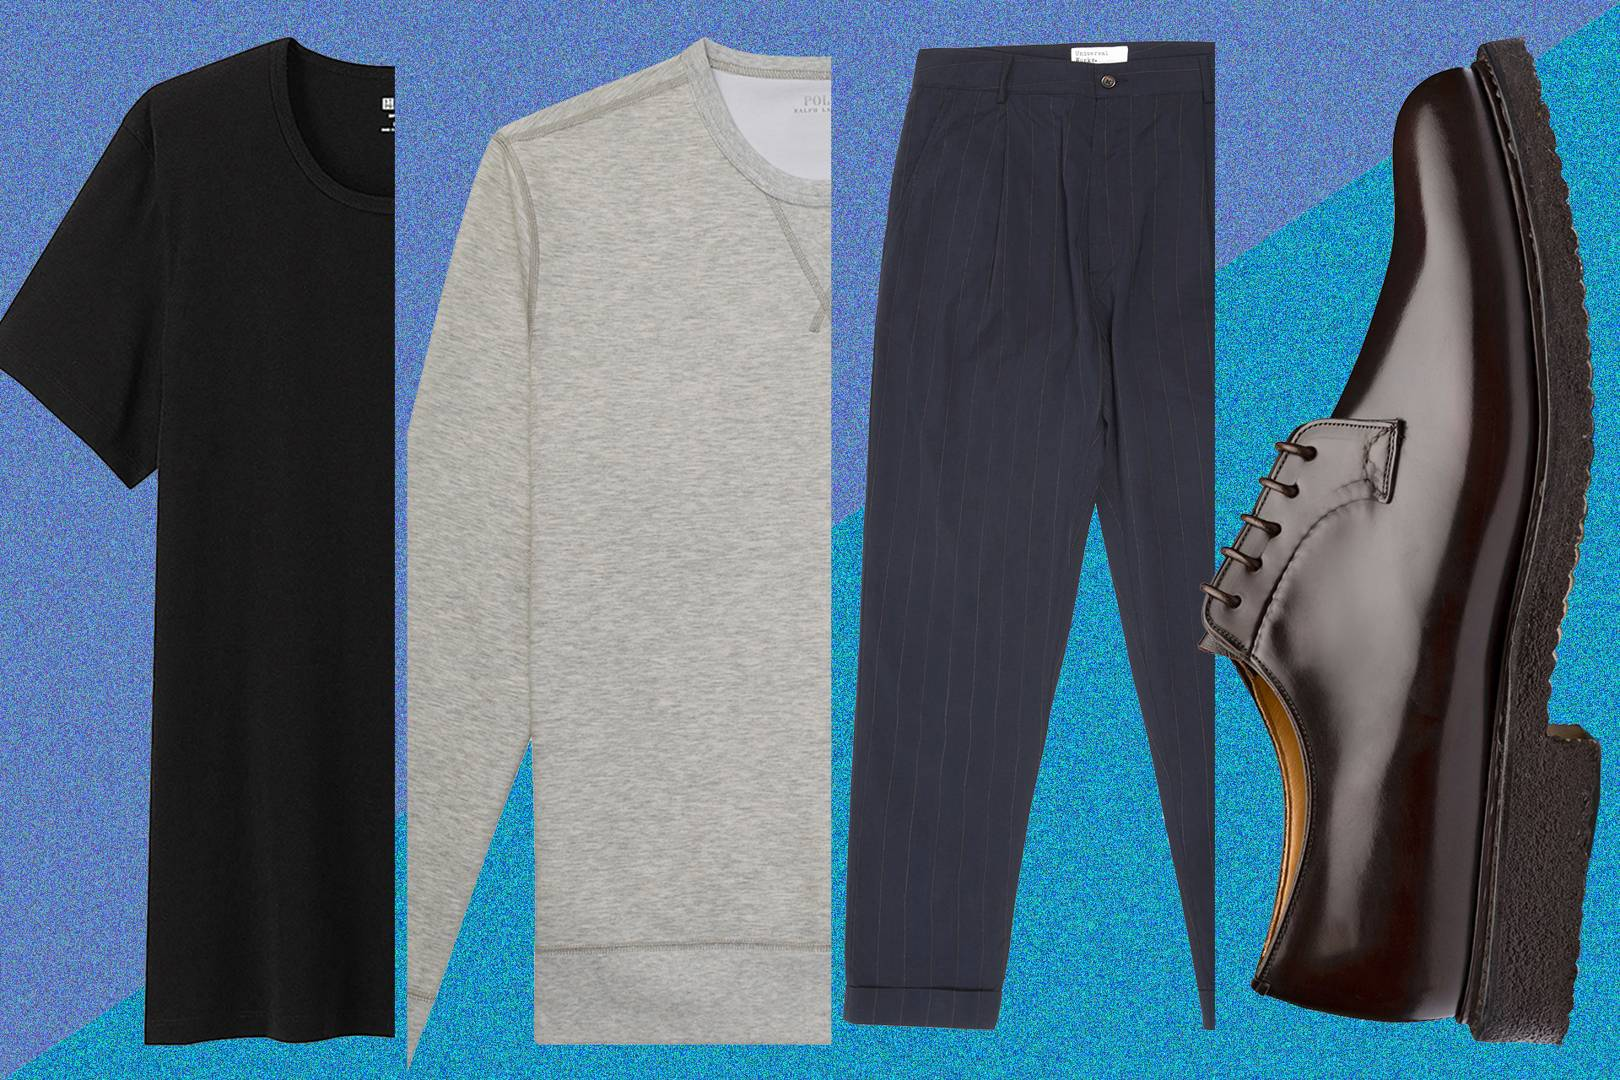 10cbbb83dd 22 men's clothing essentials: everything your wardrobe needs | British GQ